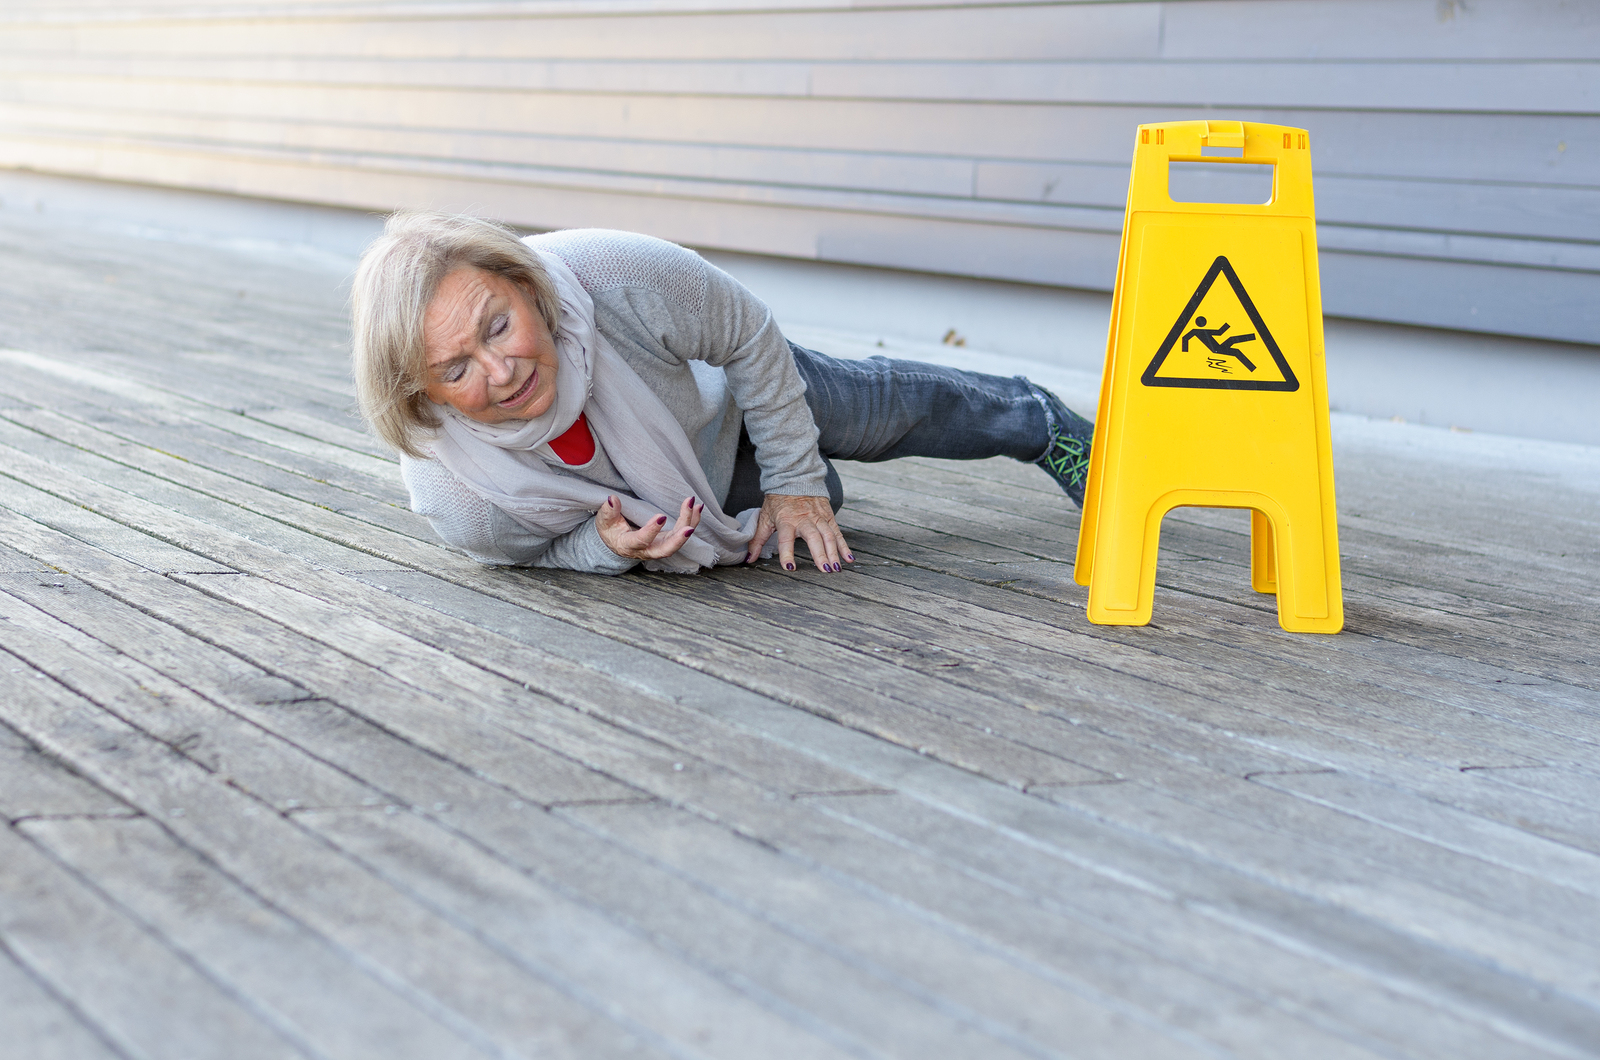 Personal Injury Compensation for Slip and Fall Injuries